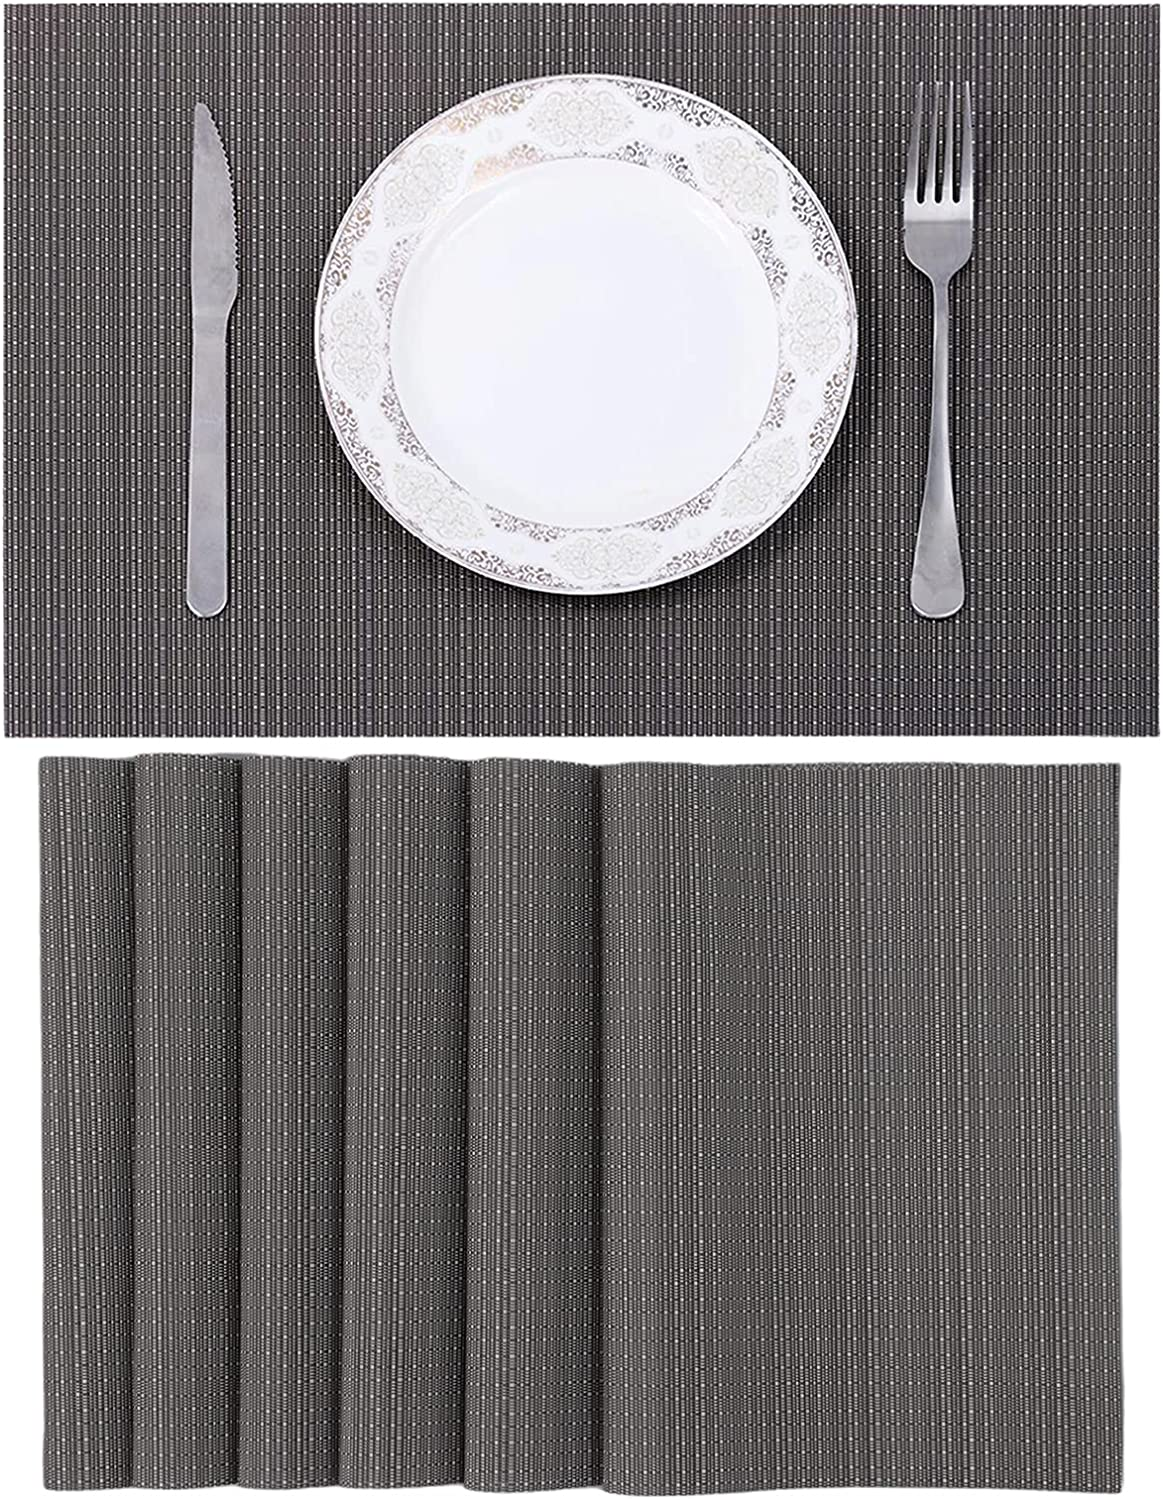 Max Safety and trust 62% OFF Placemats for Dining Table - Washable Modern Clean Durable Easy